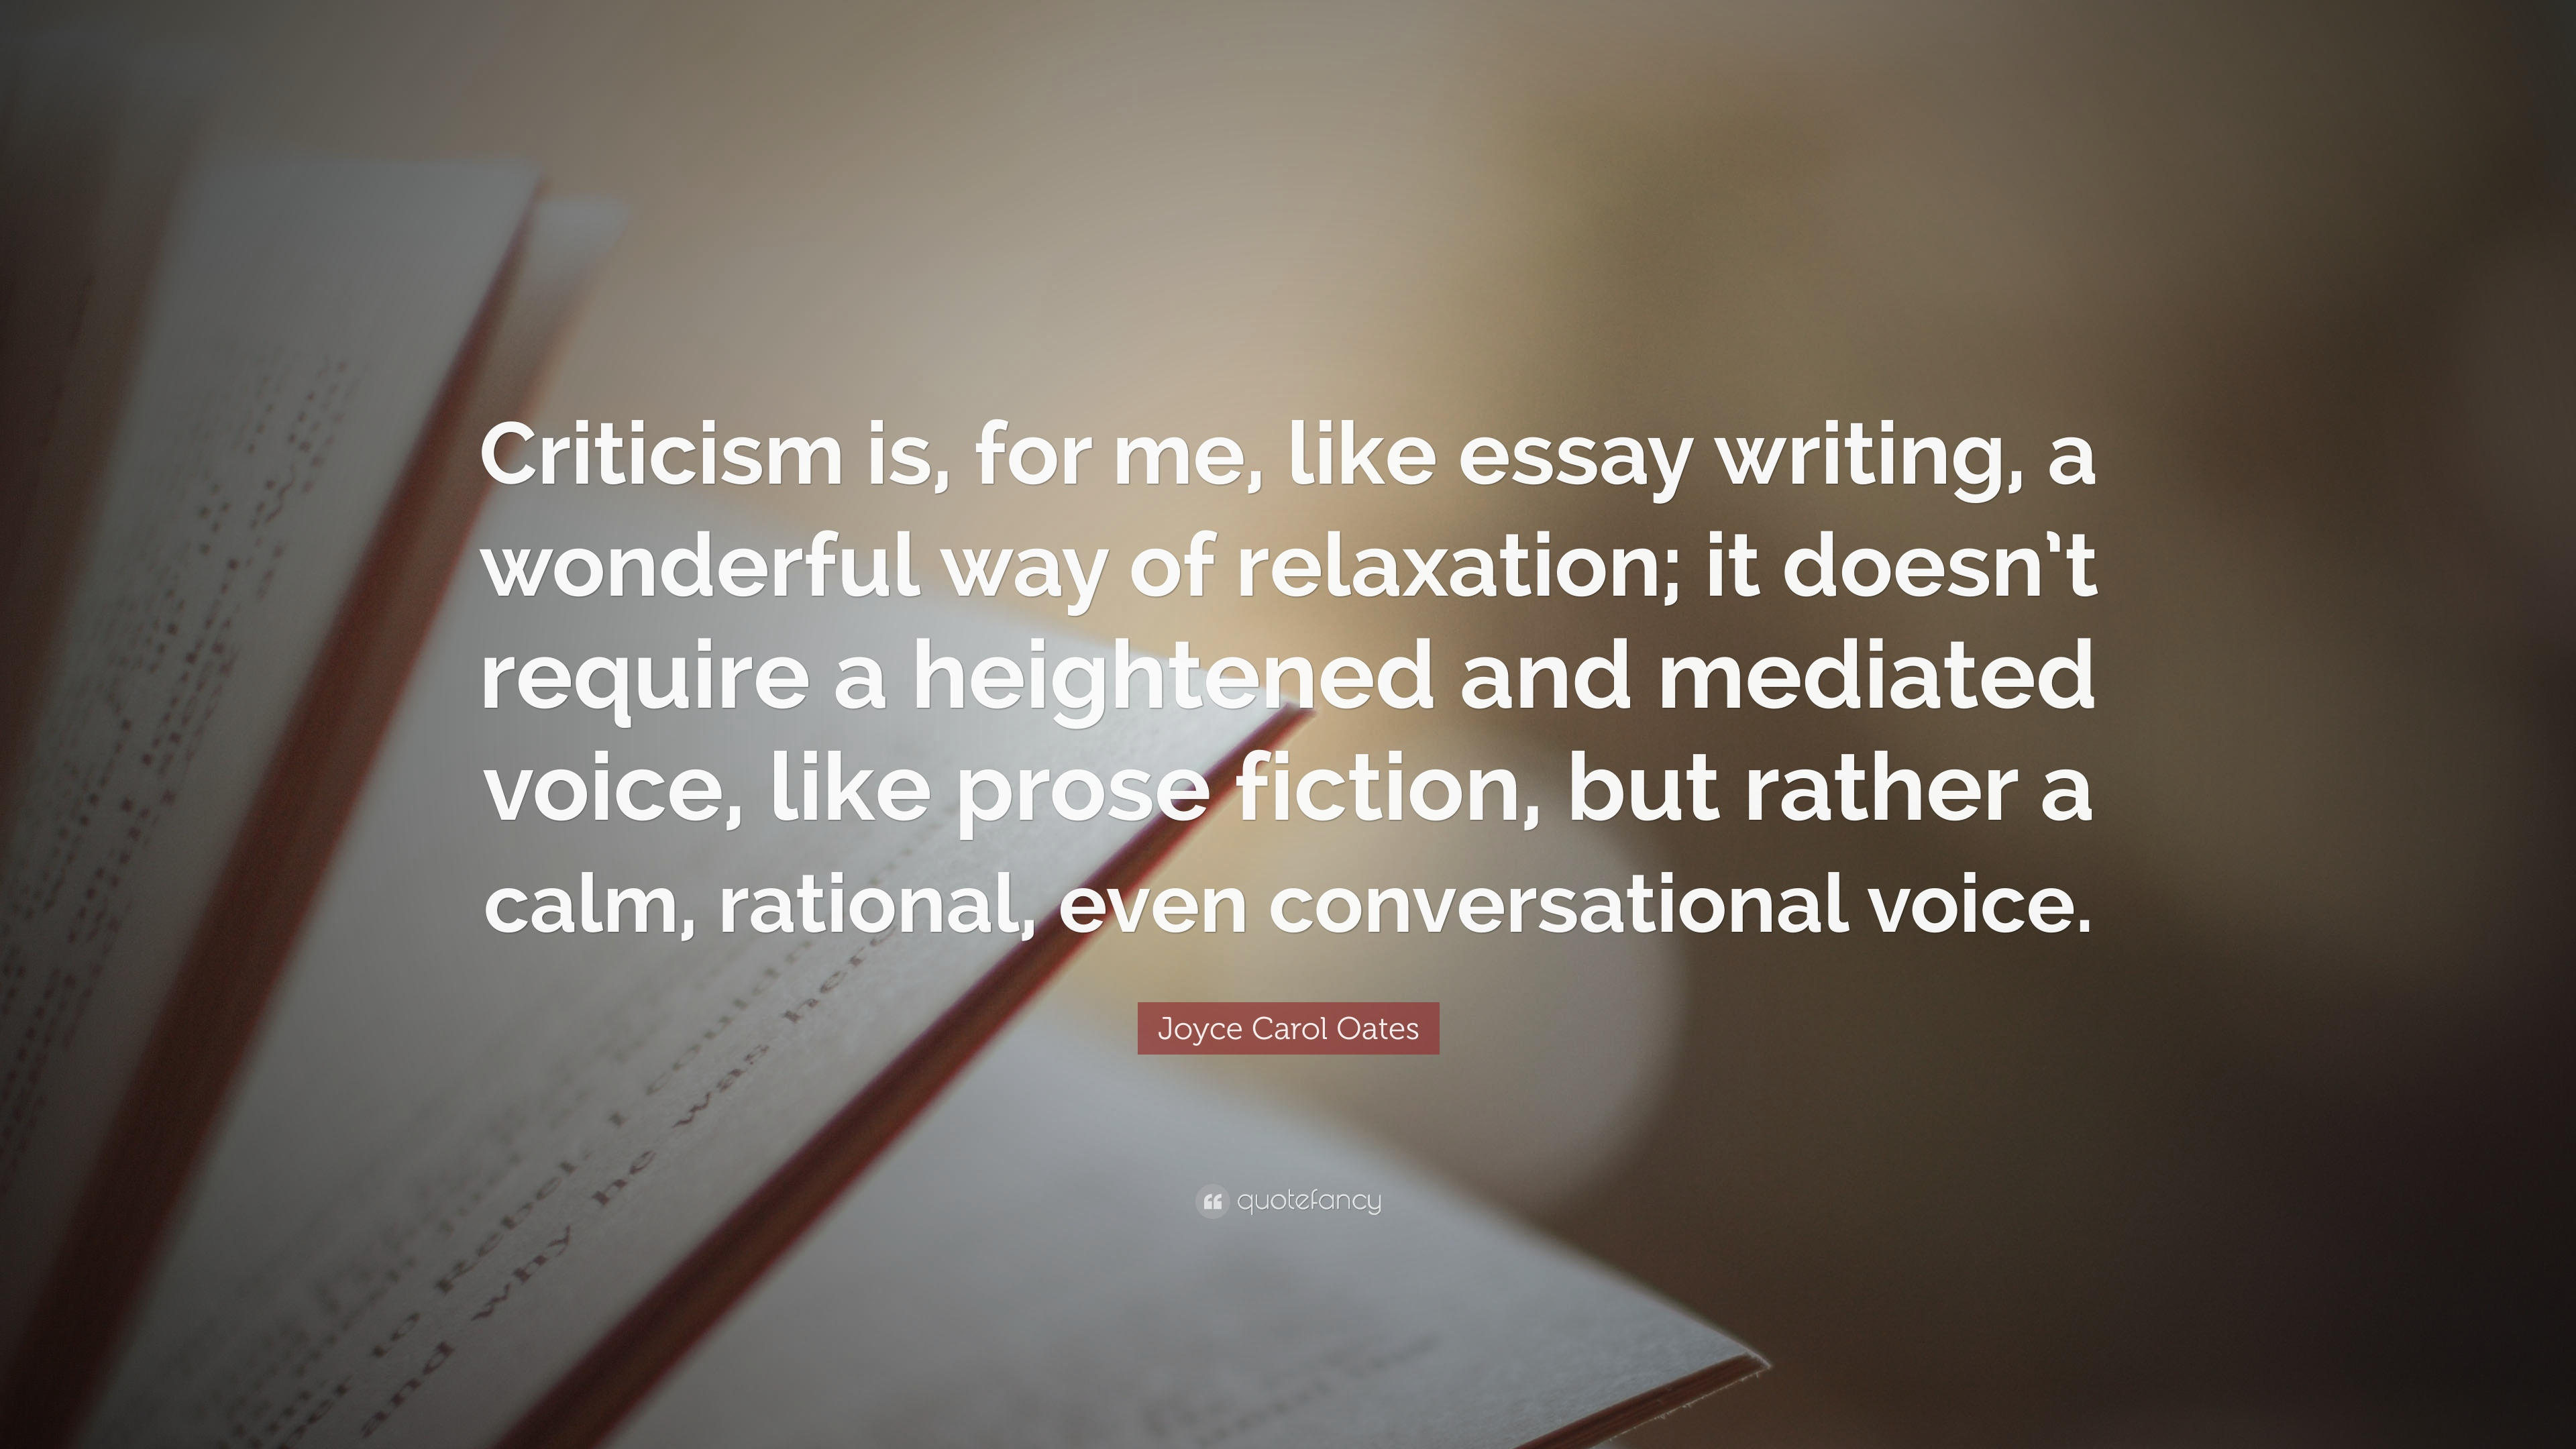 High School Essays Samples Joyce Carol Oates Quote Criticism Is For Me Like Essay Writing Examples Of A Thesis Statement For A Narrative Essay also Compare And Contrast Essay On High School And College Joyce Carol Oates Quote Criticism Is For Me Like Essay Writing  Thesis For Compare Contrast Essay